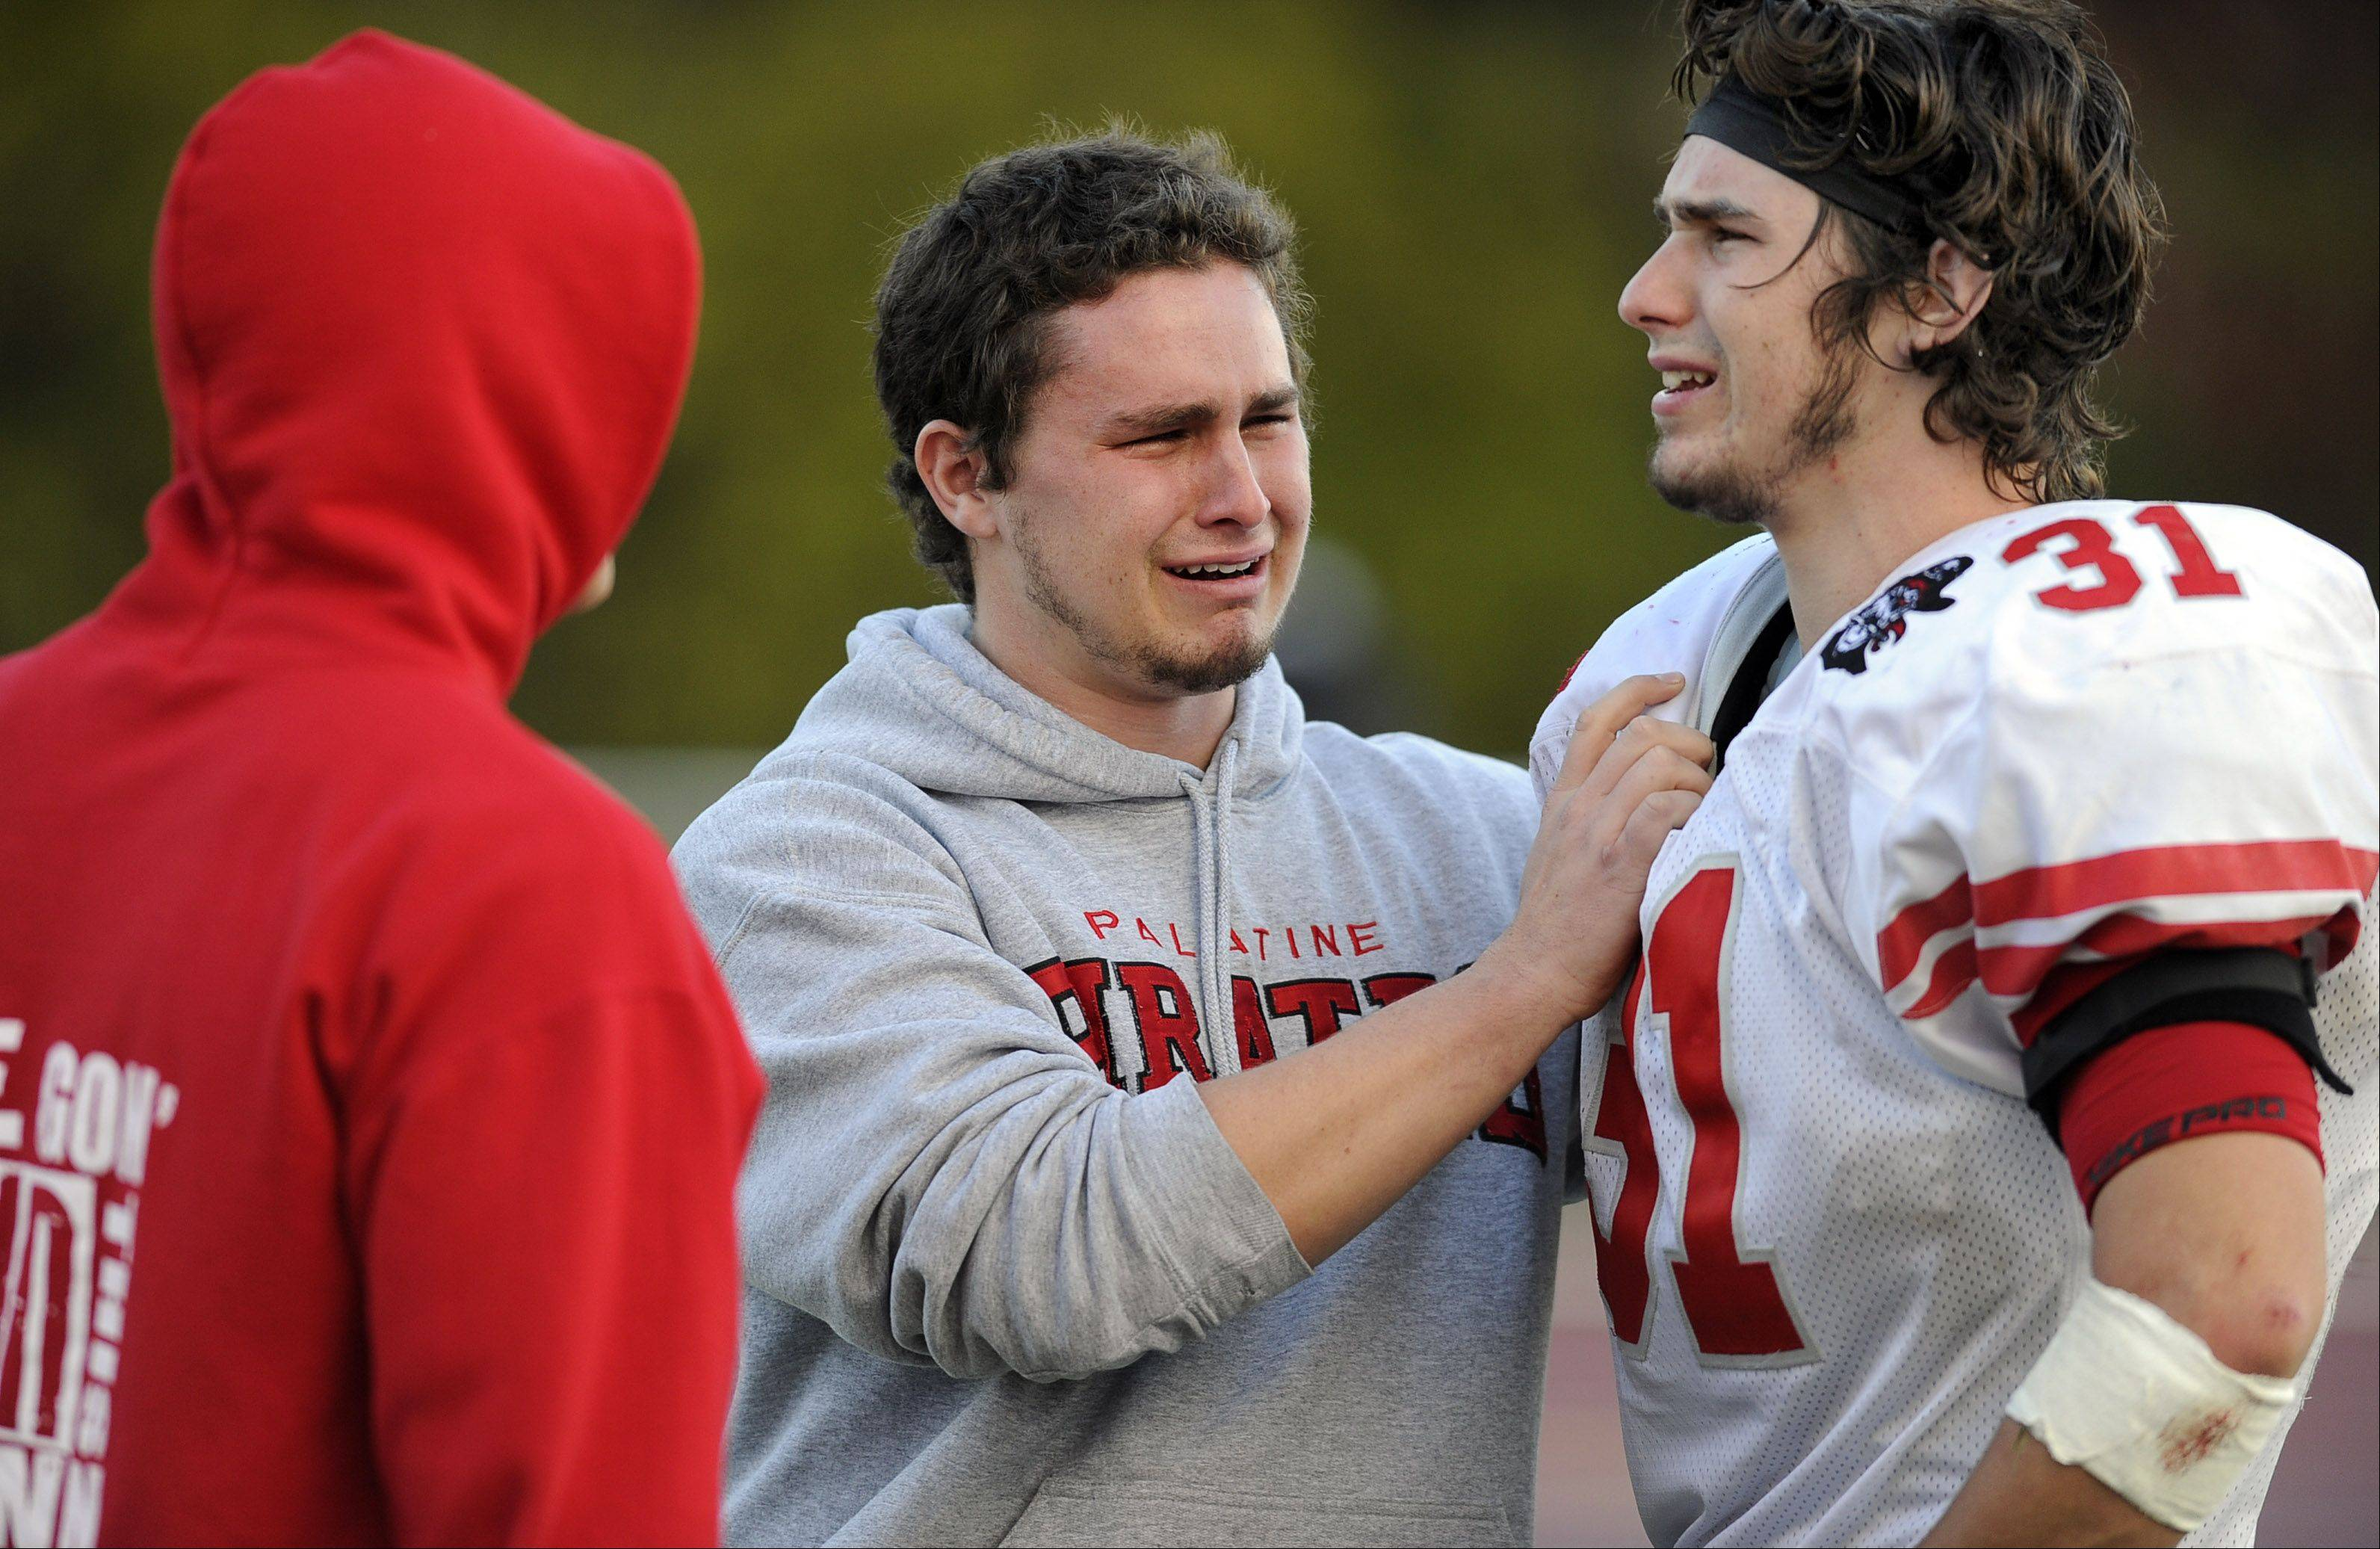 Palatine's Jesse Bobbit and his brother react after losing to Loyola.